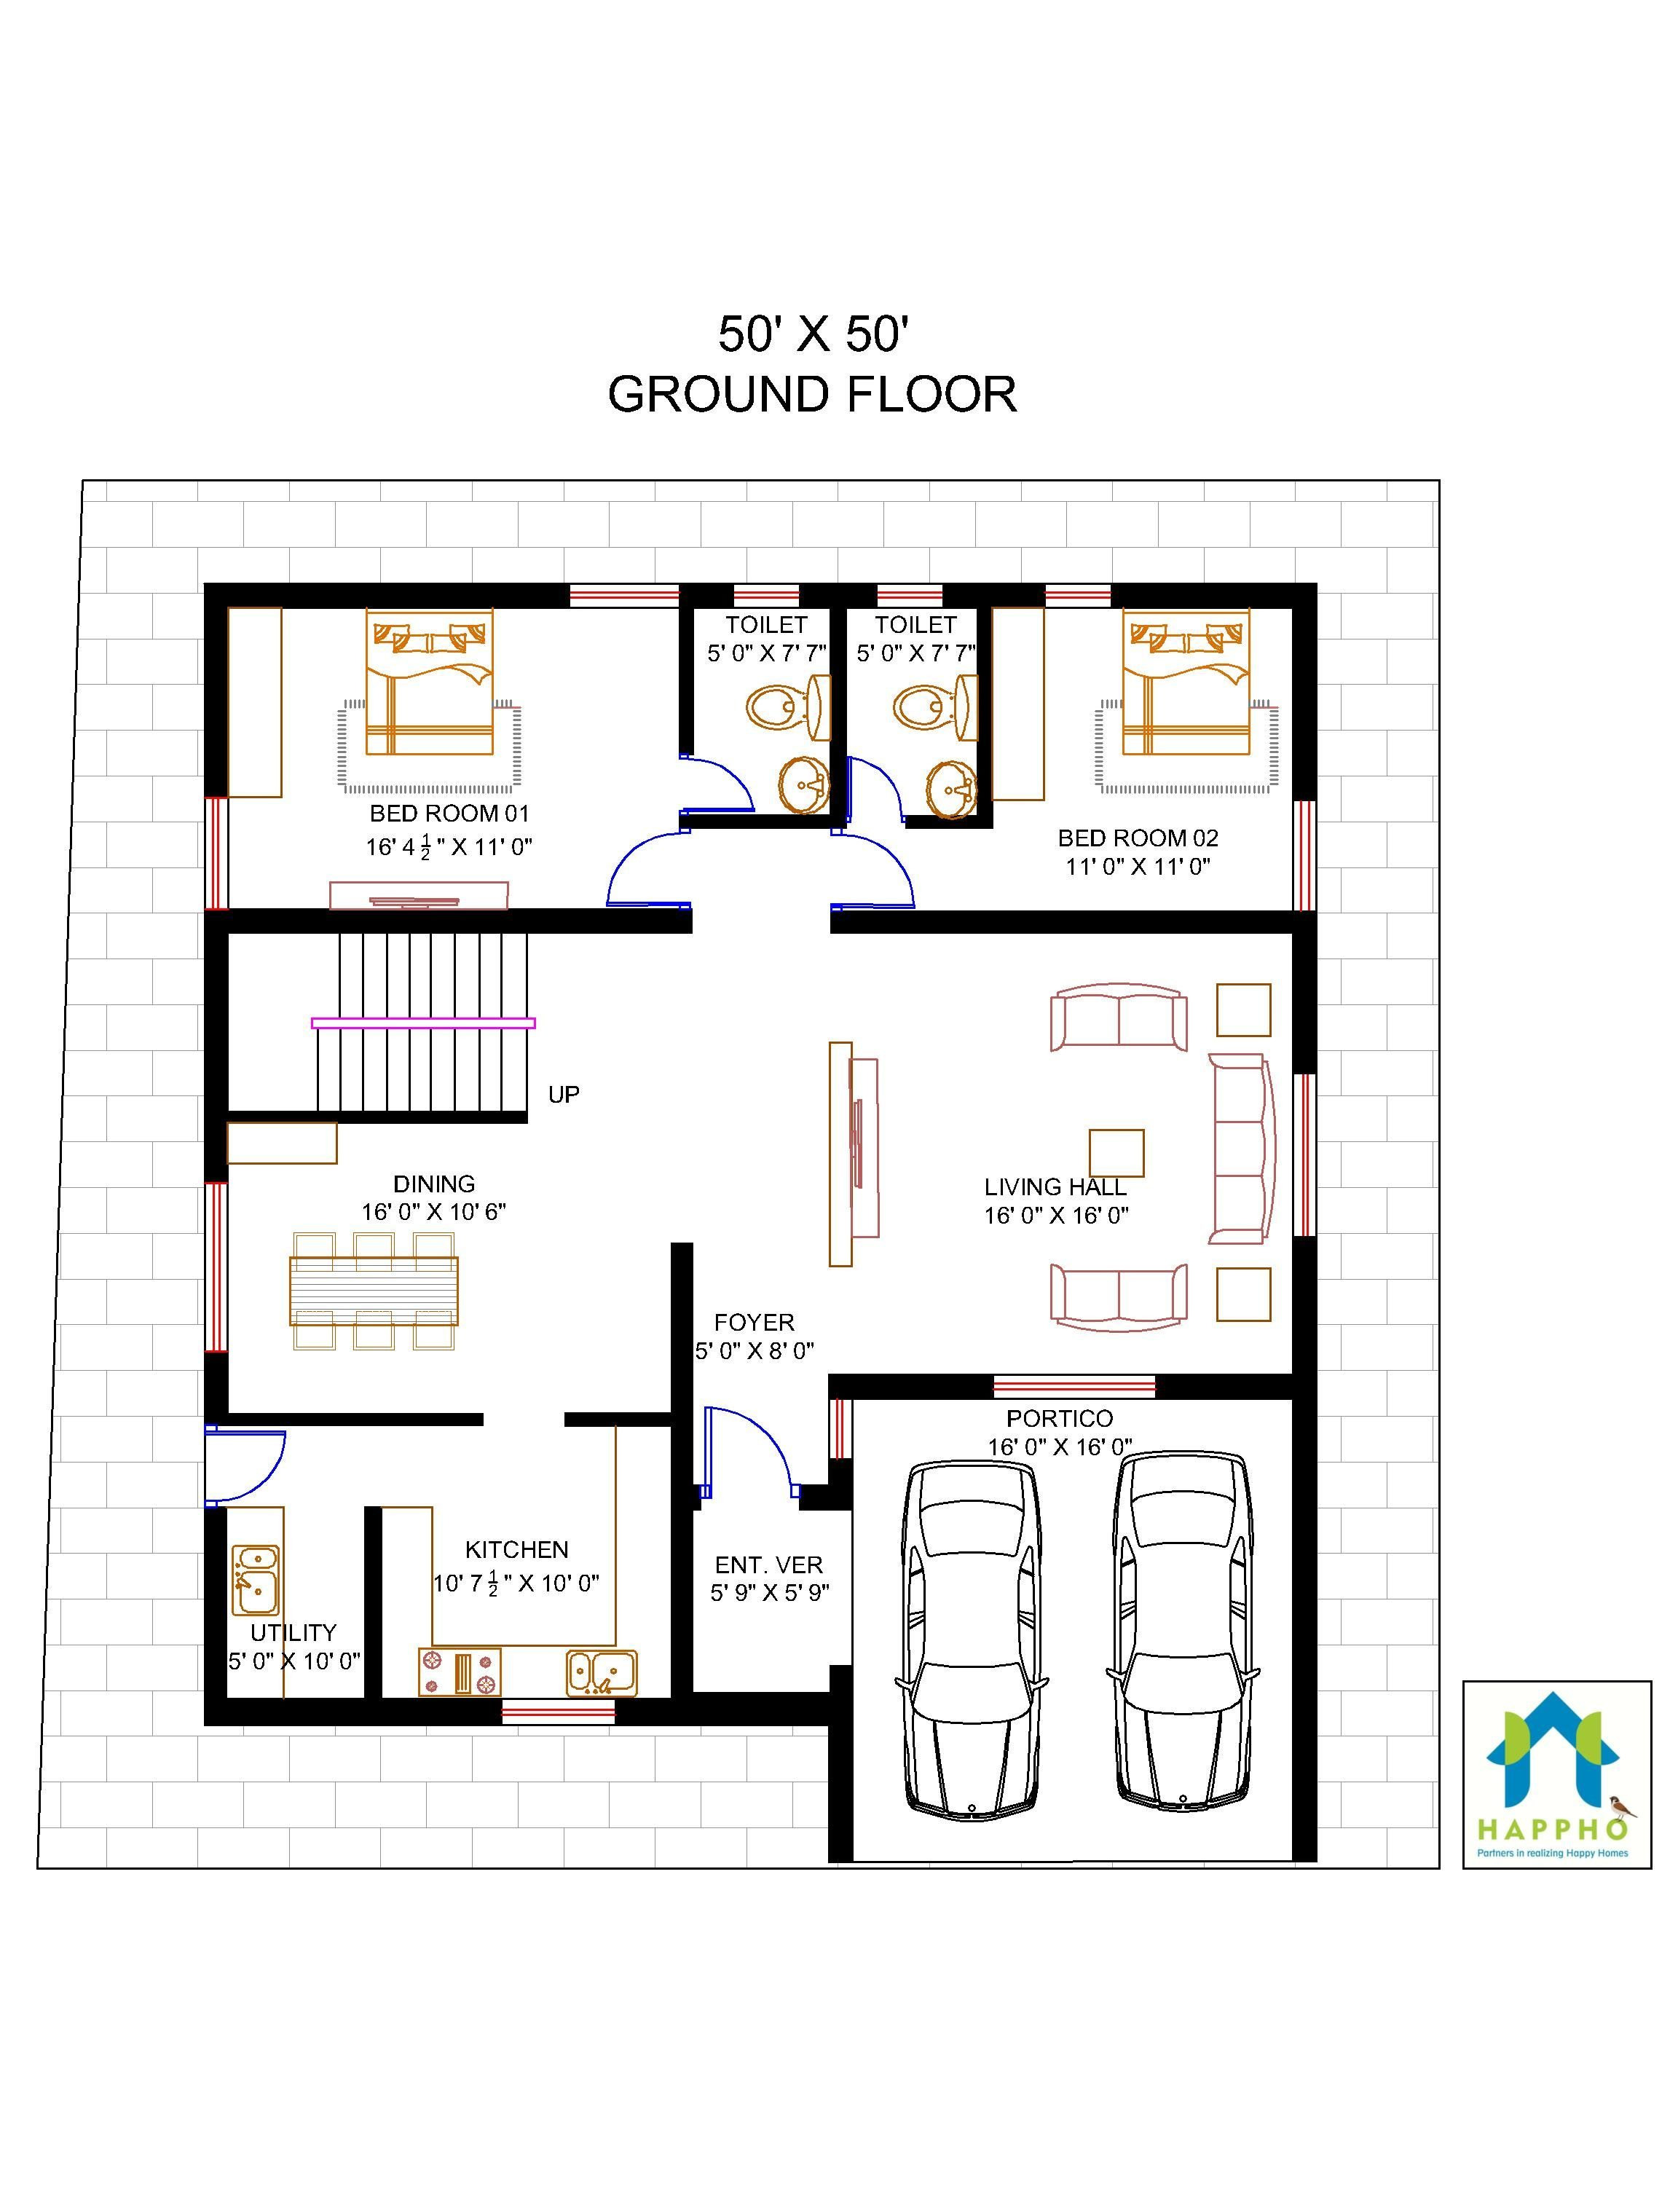 4 bhk floor plan 50 x 50 feet plot 2500 square feet 278 square yards